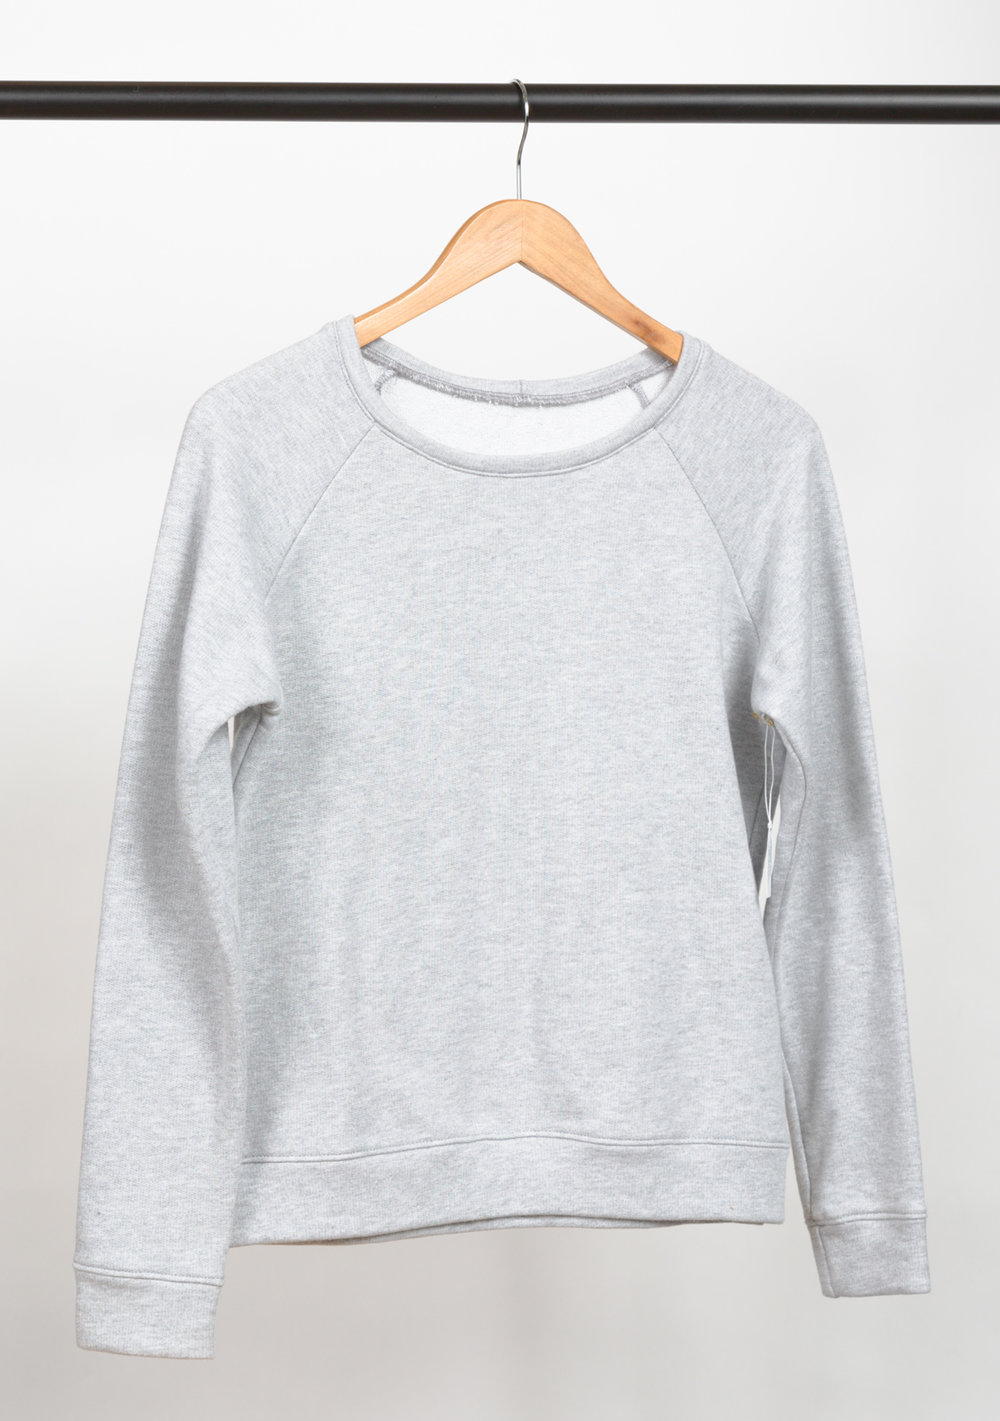 LINDEN SWEATSHIRT   DESIGNED BY   GRAINLINE STUDIO  , MADE BY   KNITTY BITTIES  , FEATURING   FRENCH TERRY LIGHT GREY